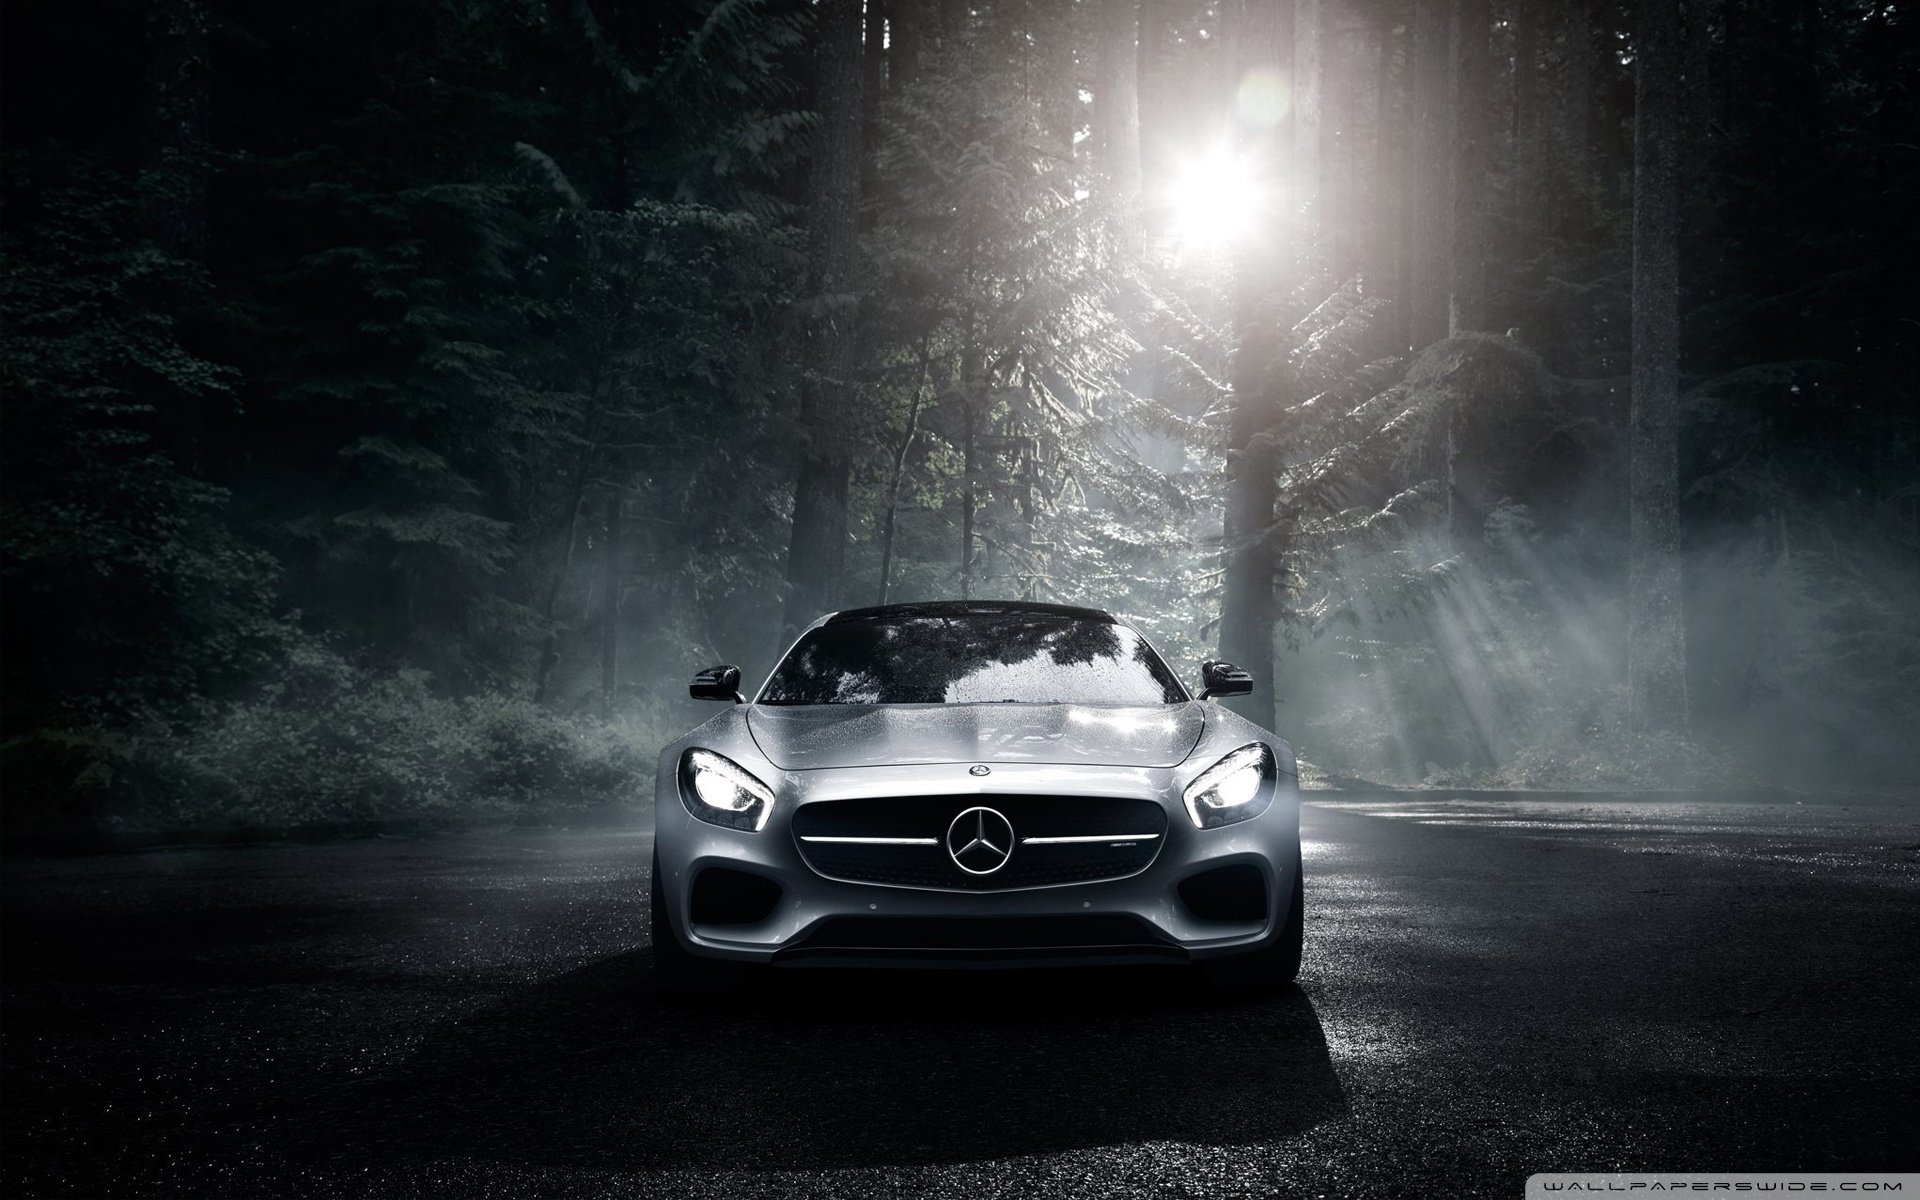 WallpapersWide com | Mercedes Benz HD Desktop Wallpapers for